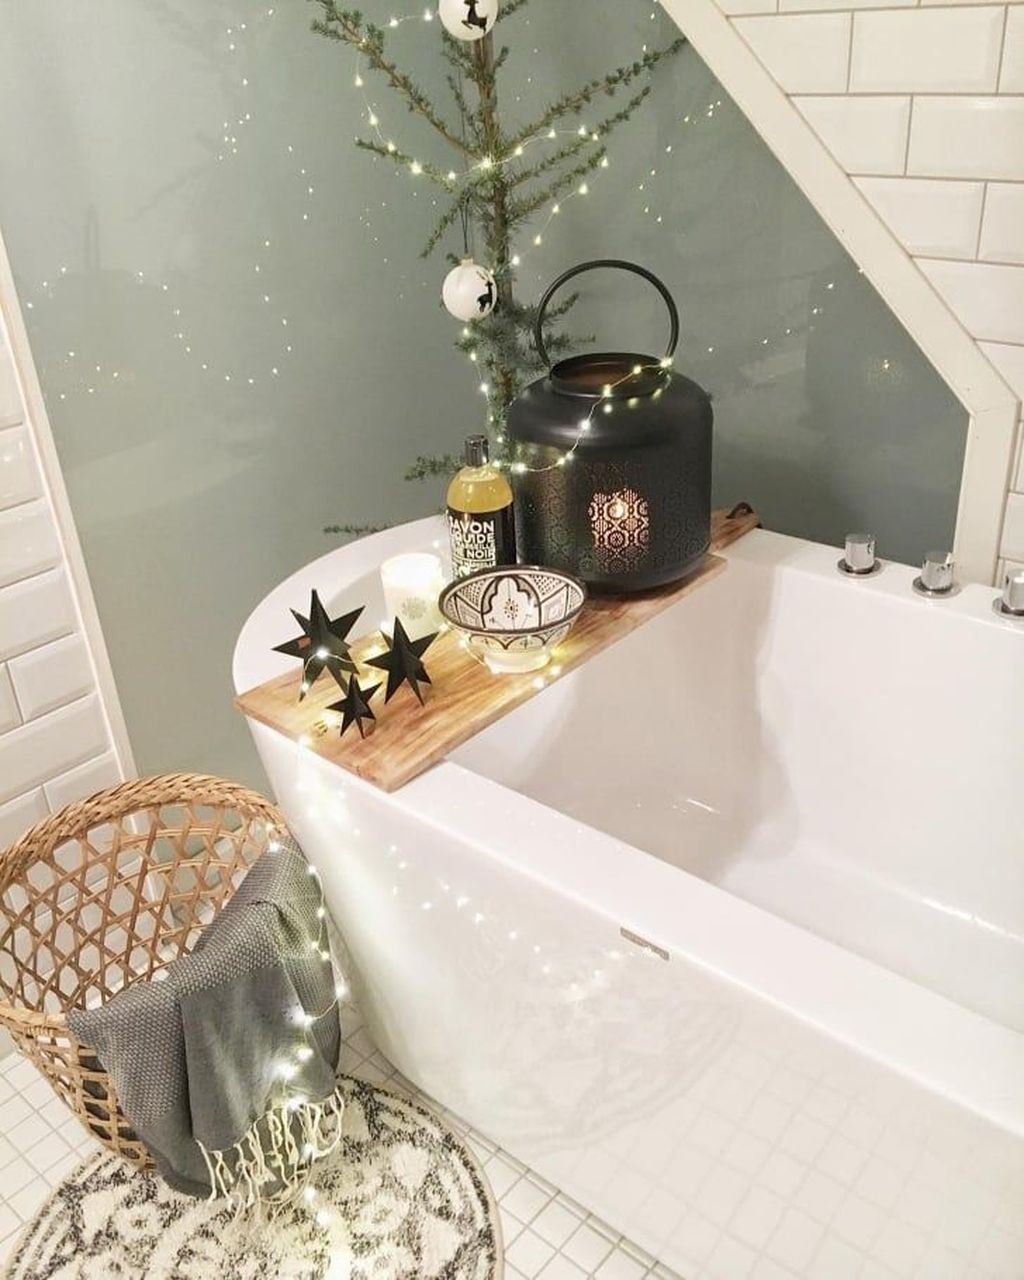 The Best Winter Bathroom Decor Ideas 34